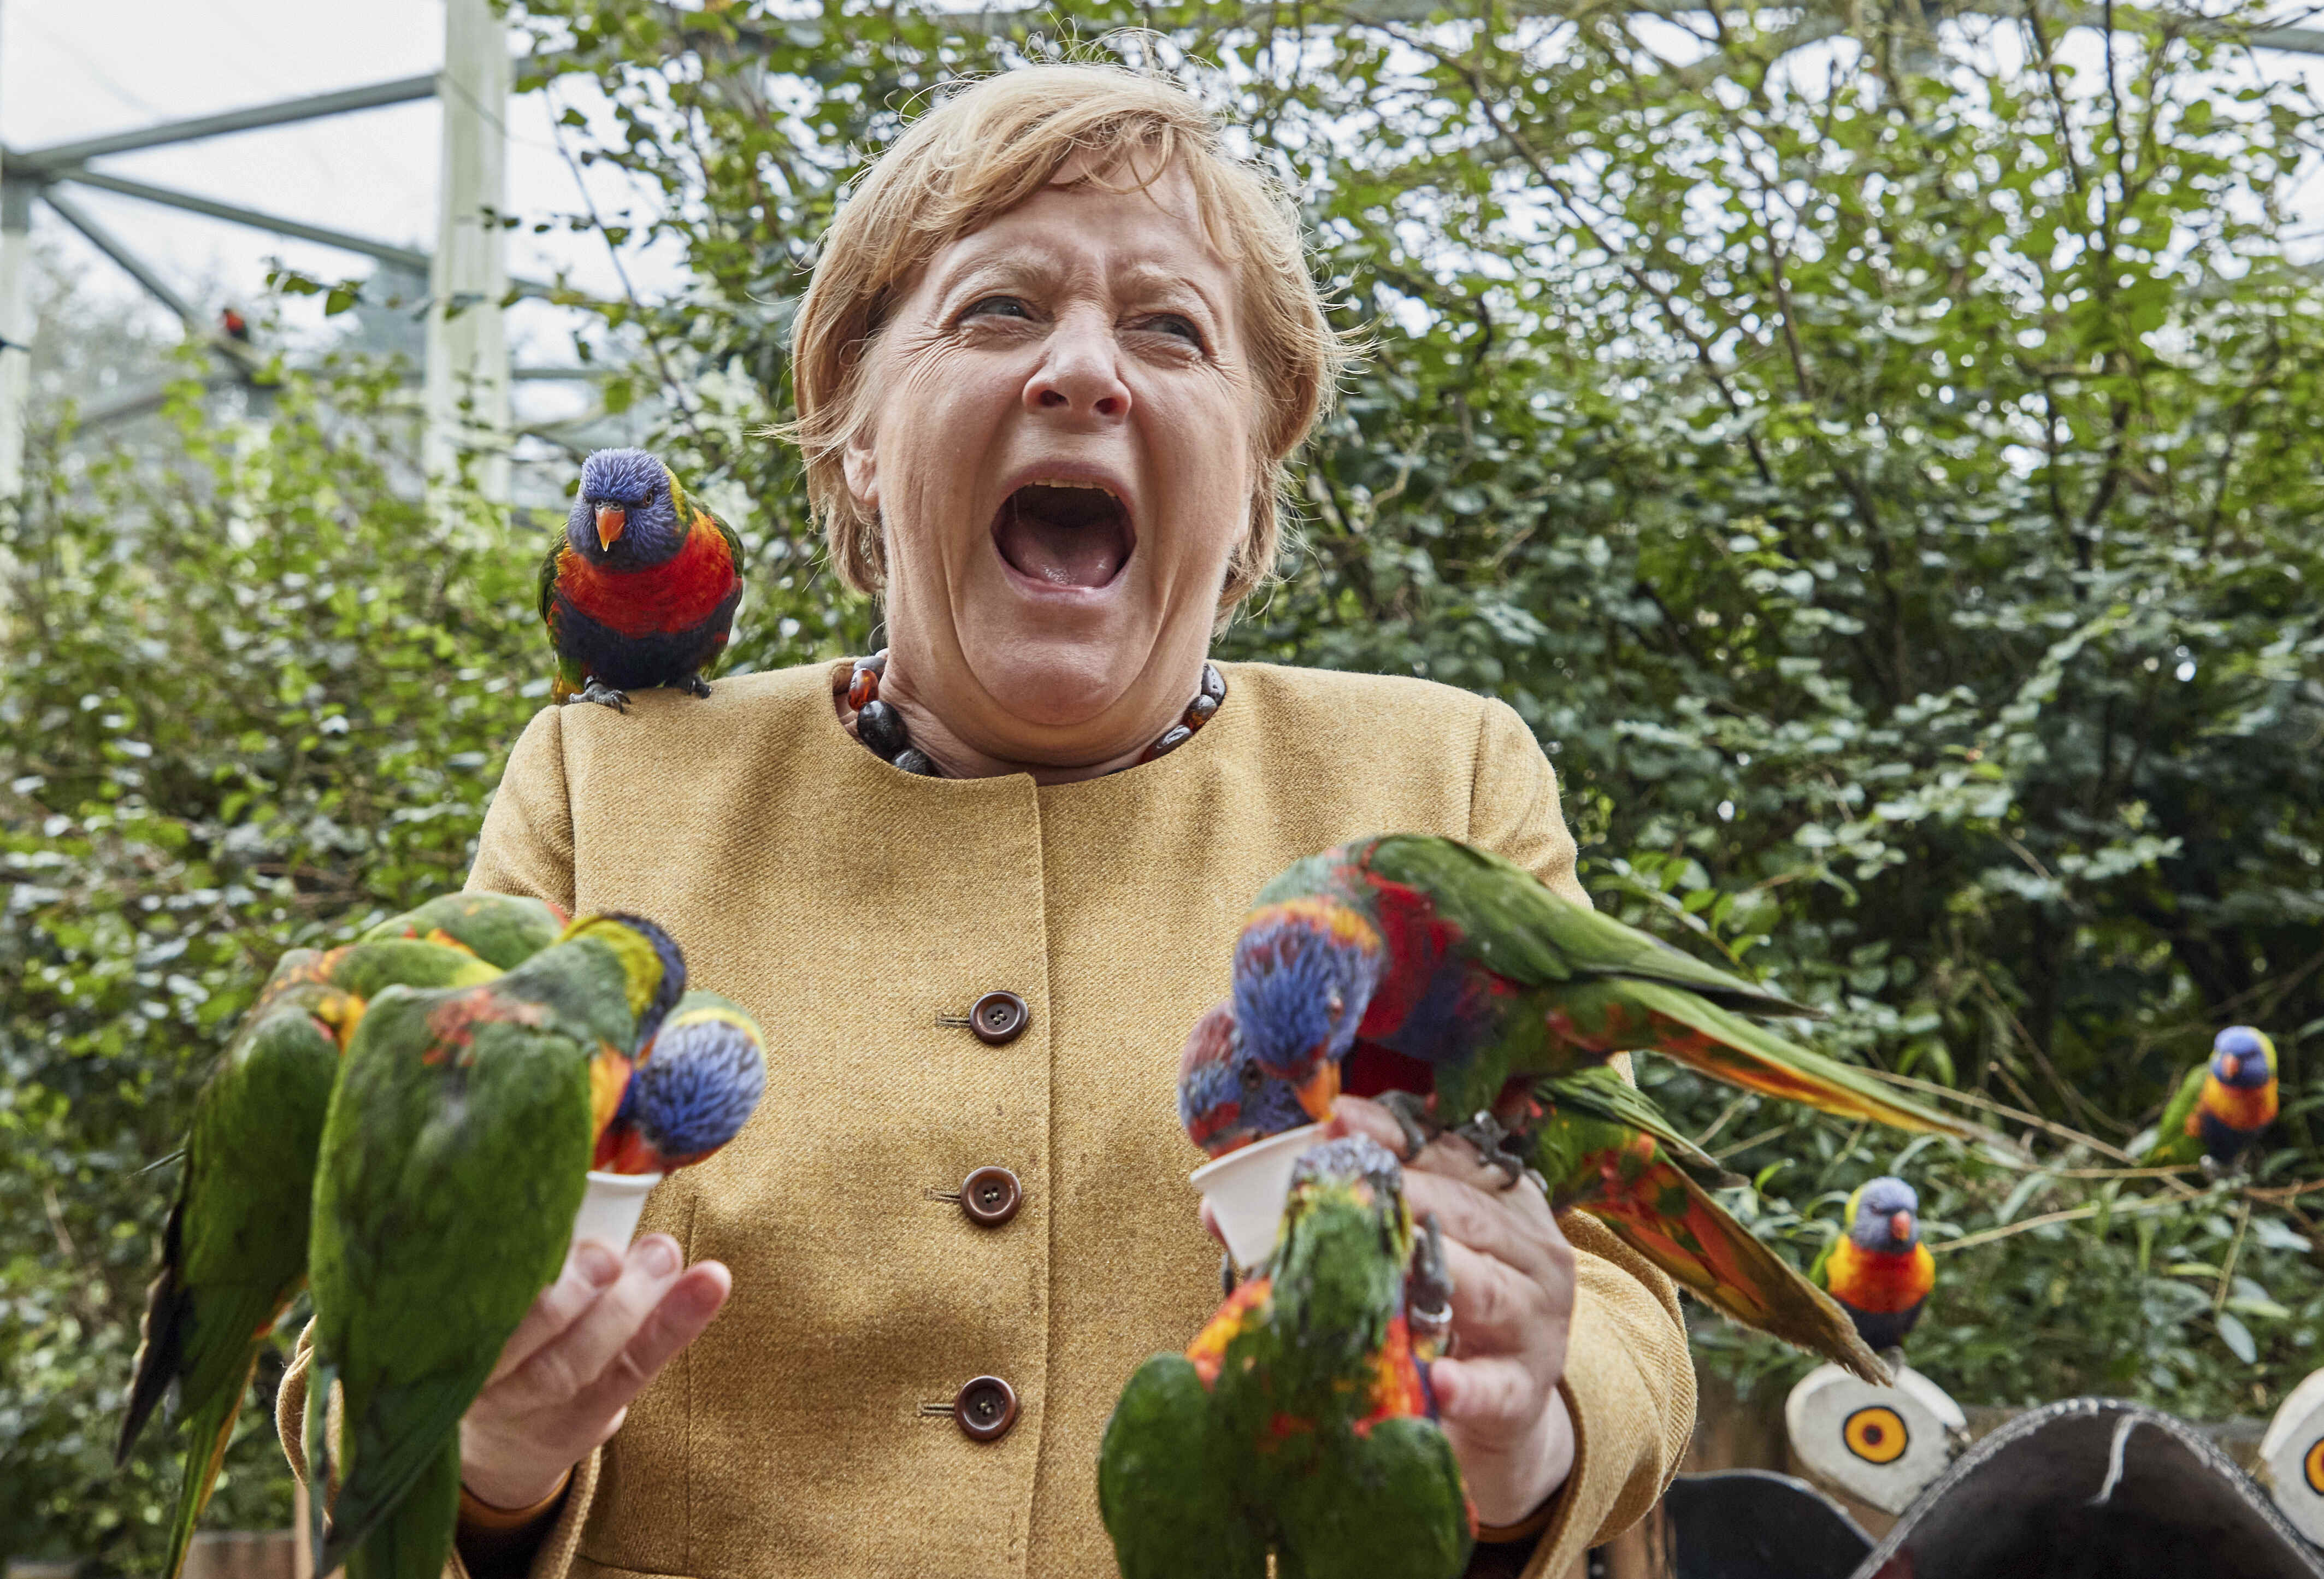 Angela Merkel pecked by parrot on the campaign trail in Germany